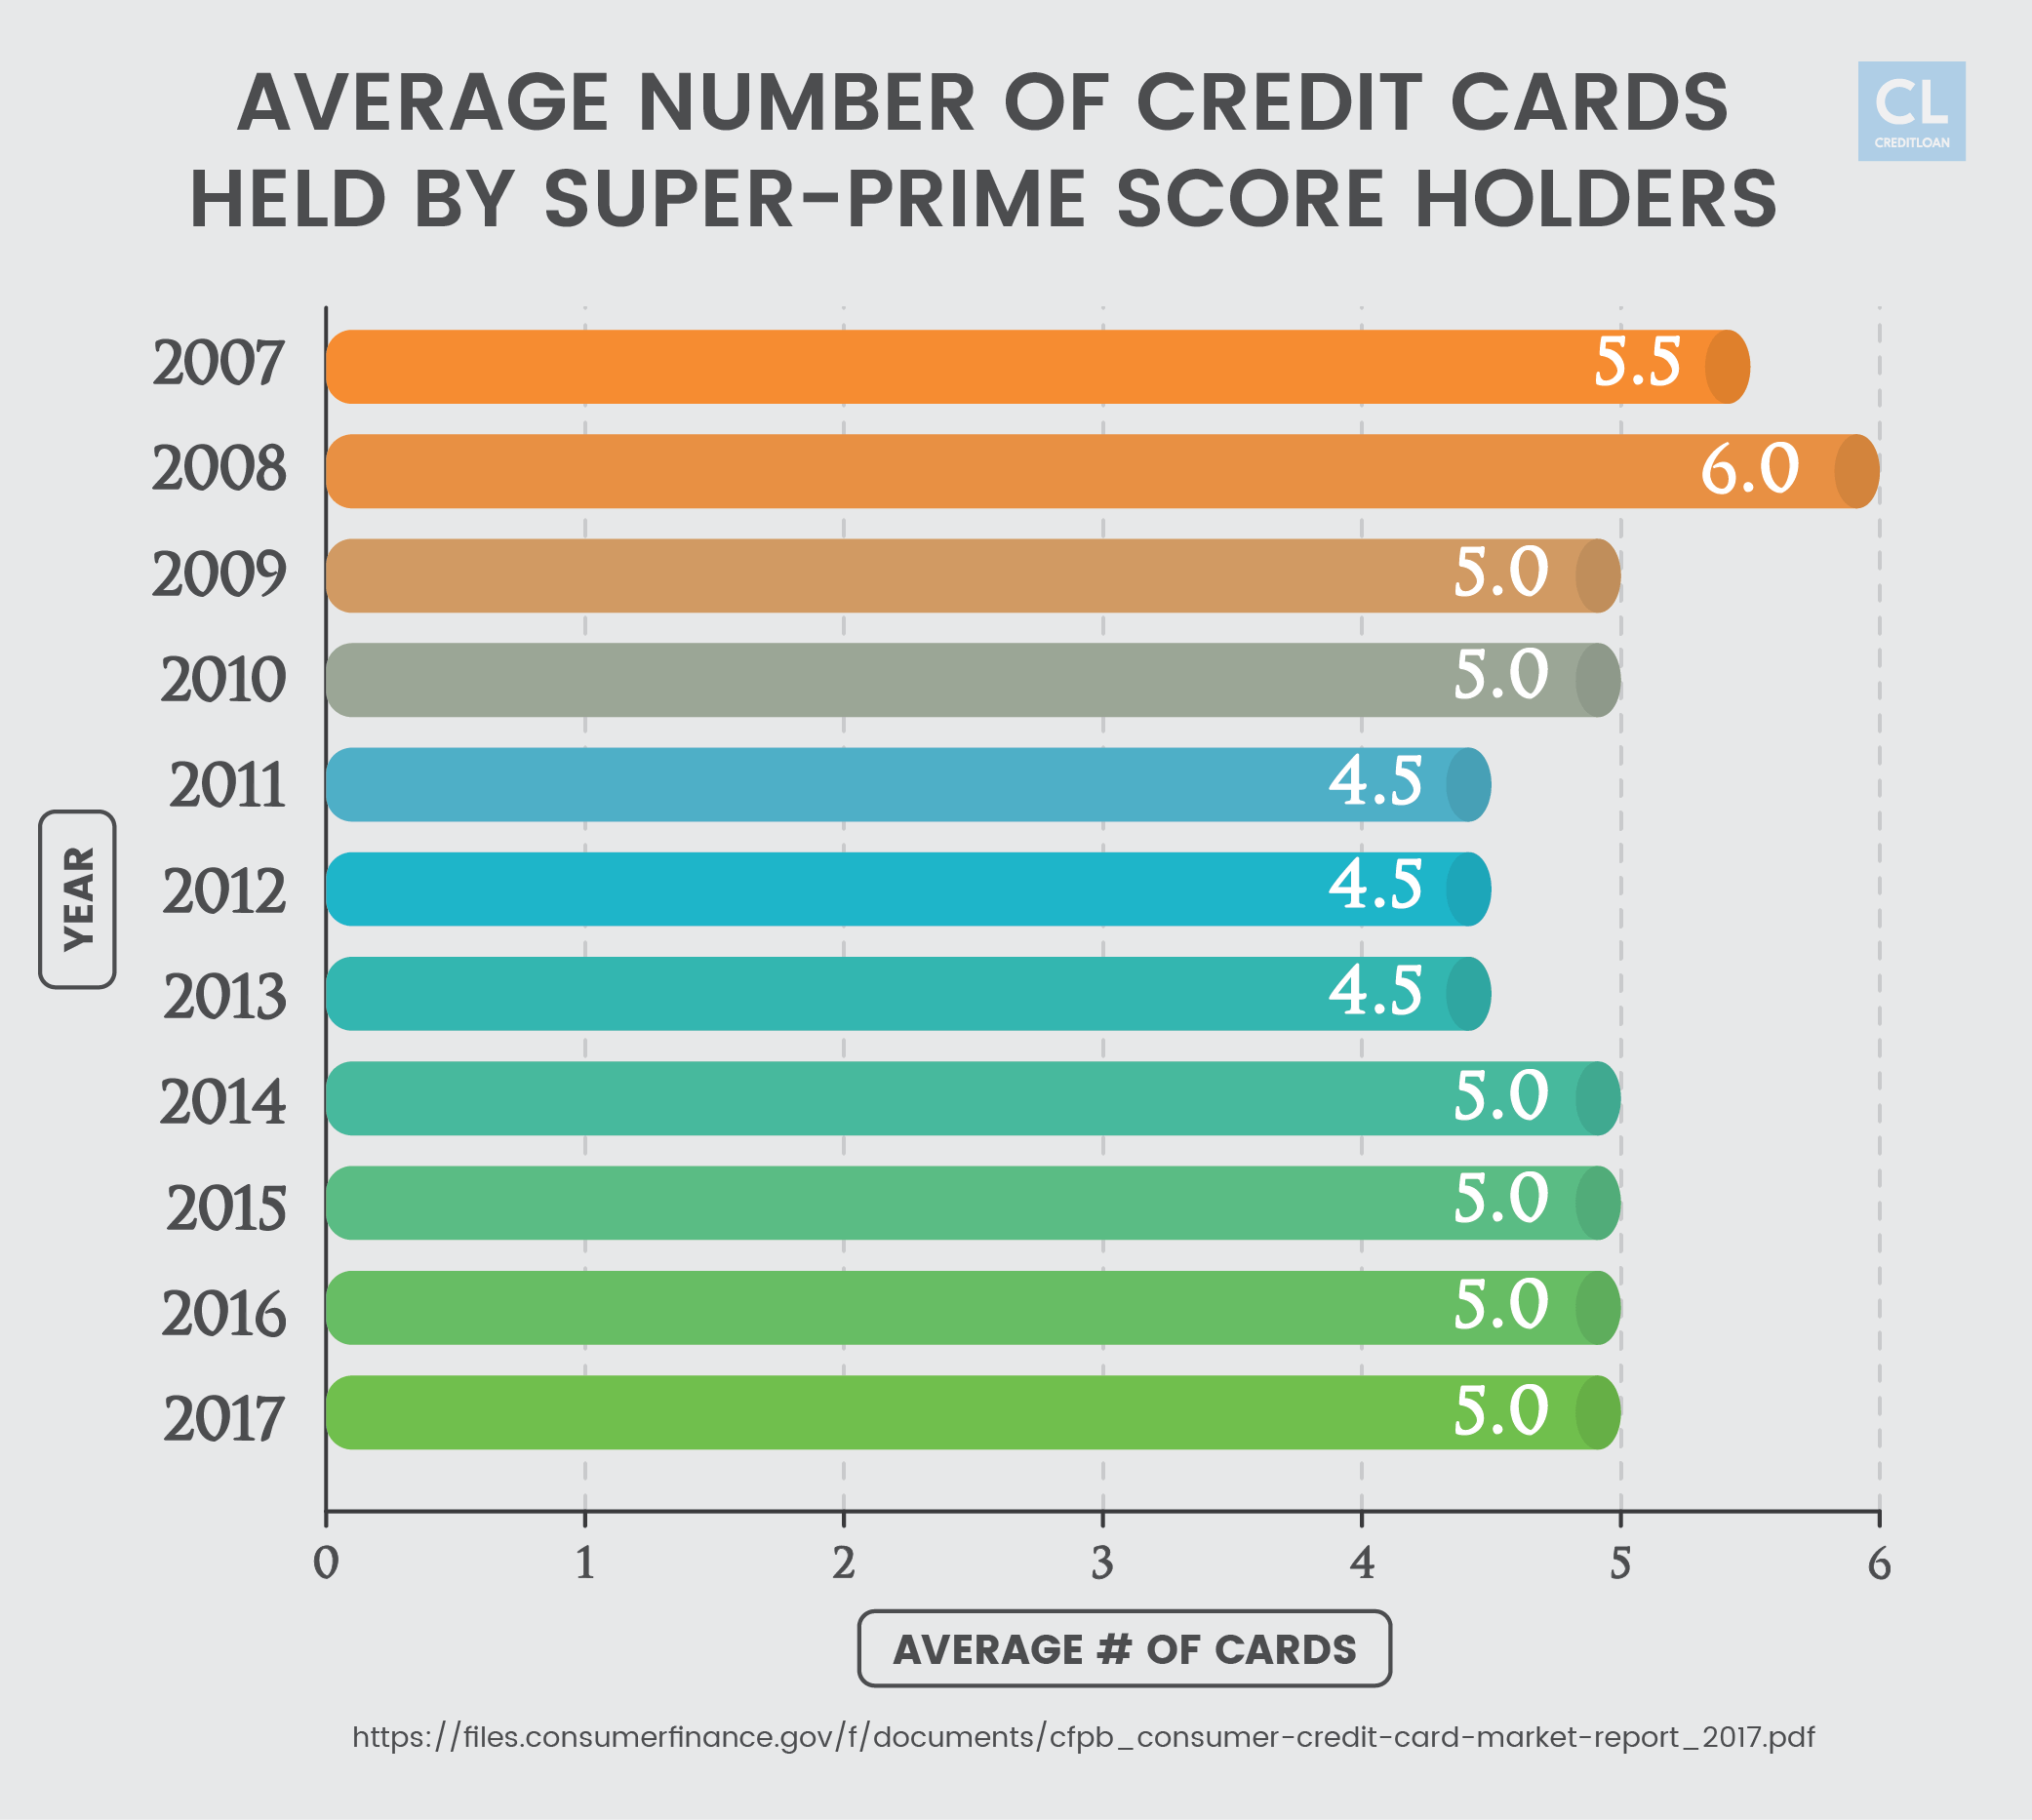 Credit Cards Held by Super-prime Score Holders from 2007-2017